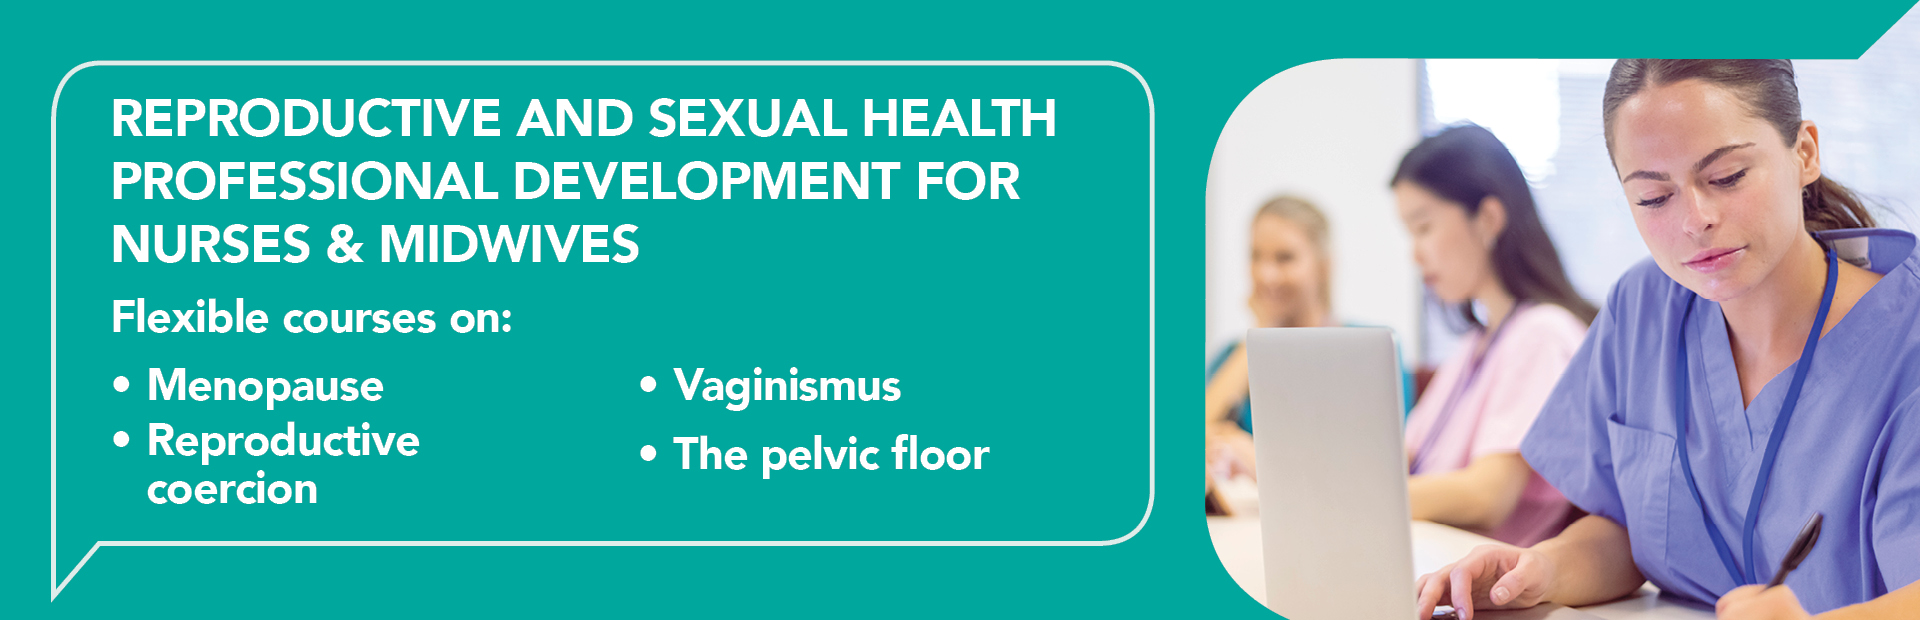 Reproductive and Sexual Health Professional Development